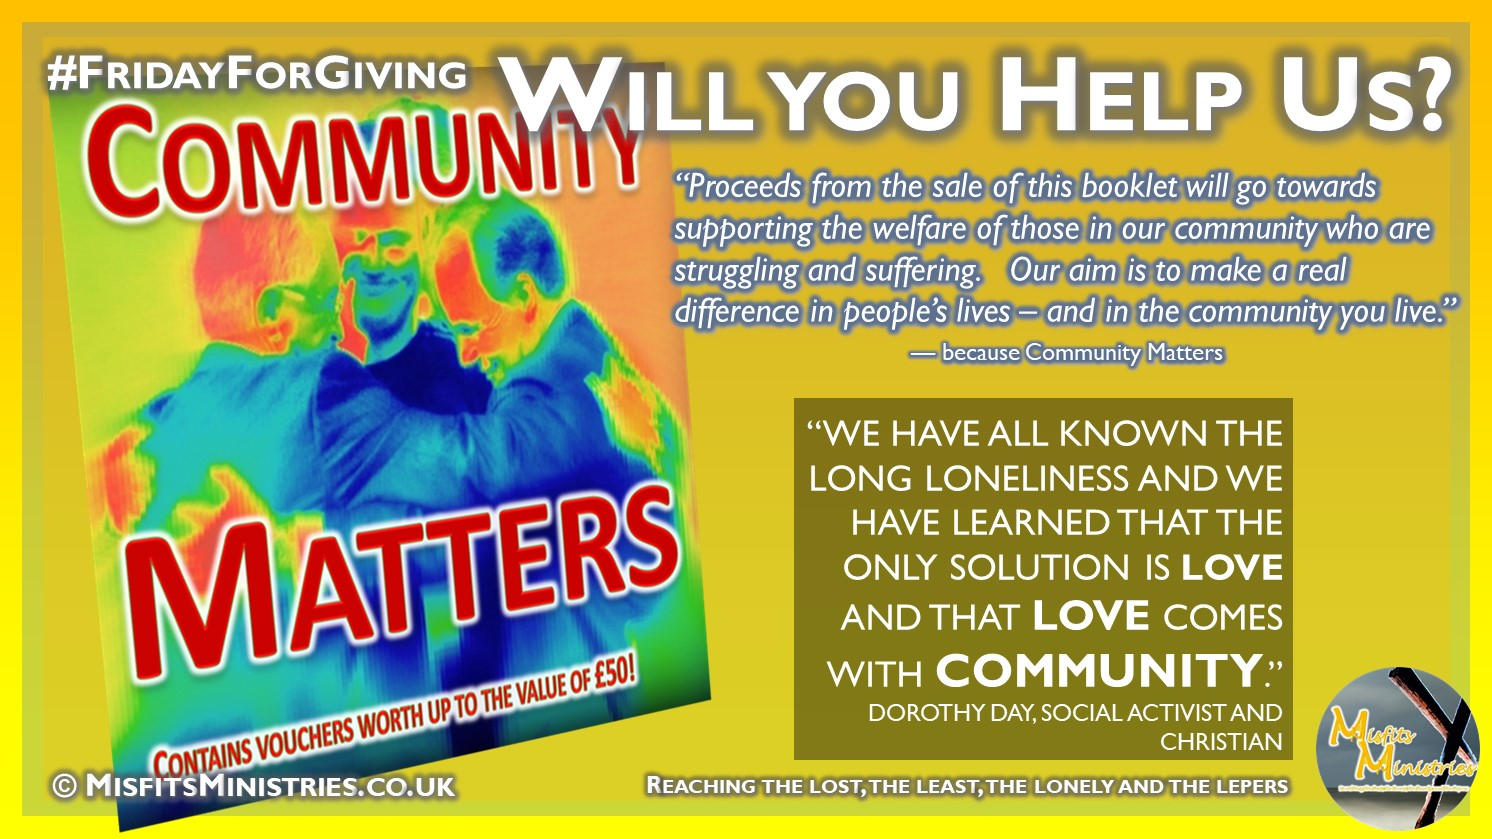 FridayForGiving - Will you help us - Community Matters